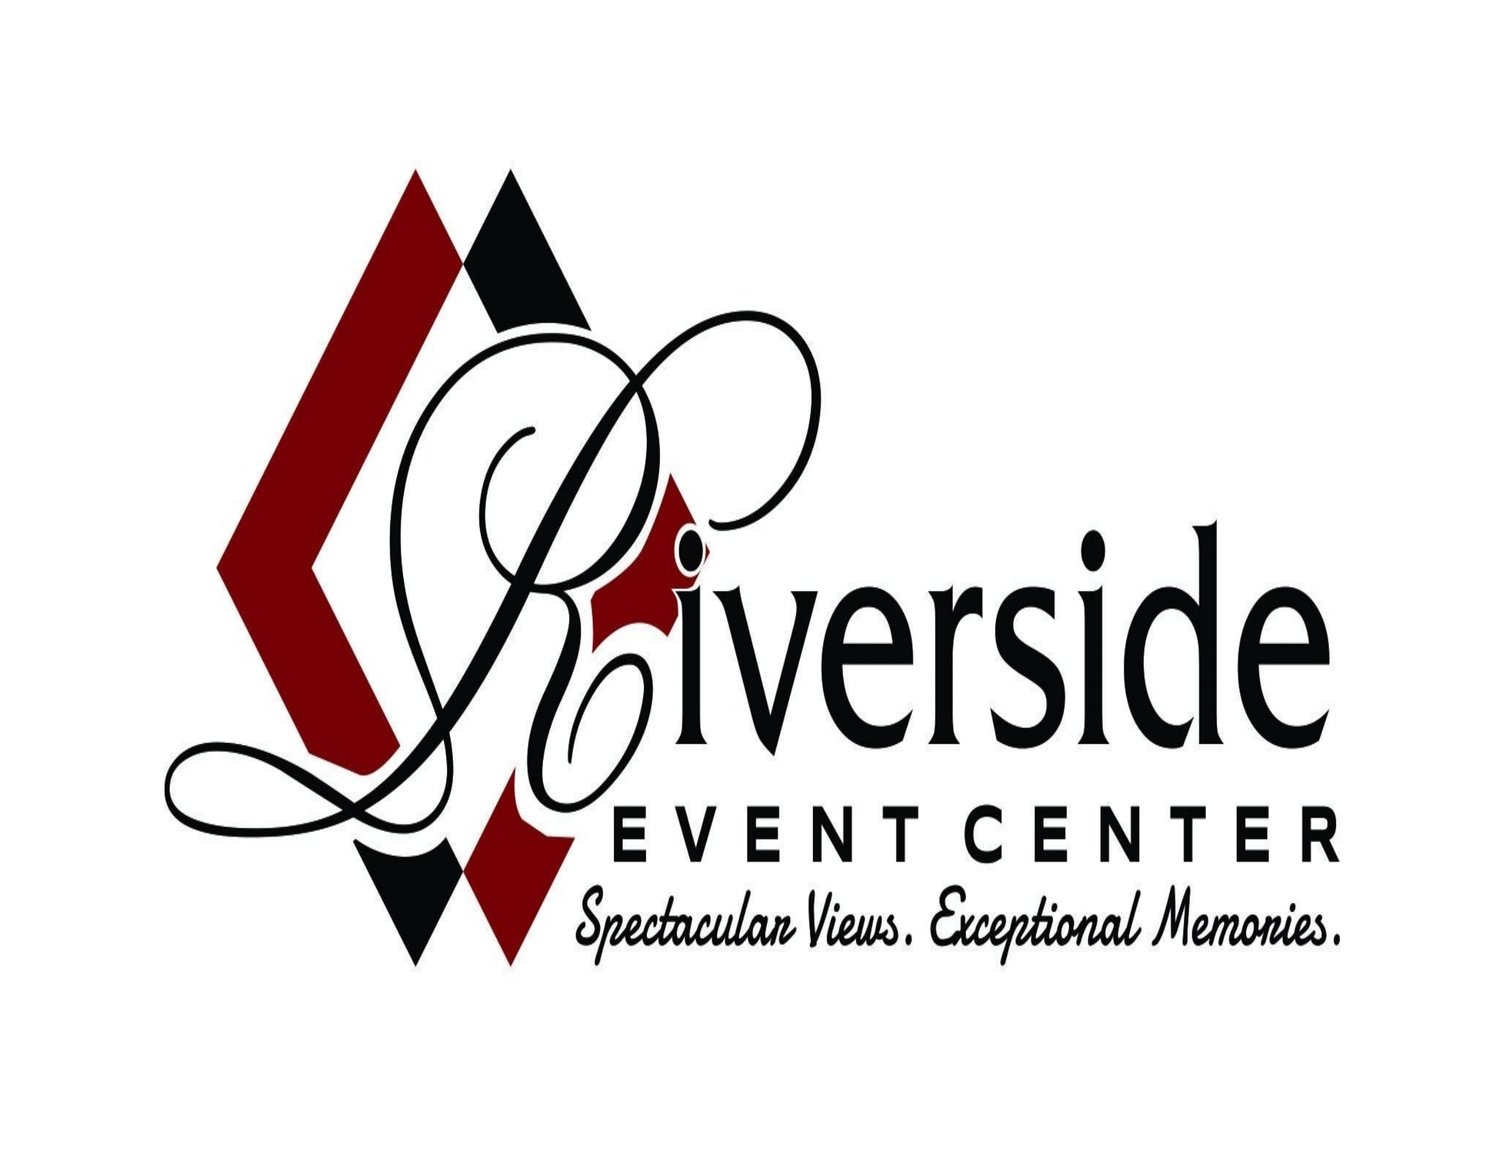 Riverside Event Center